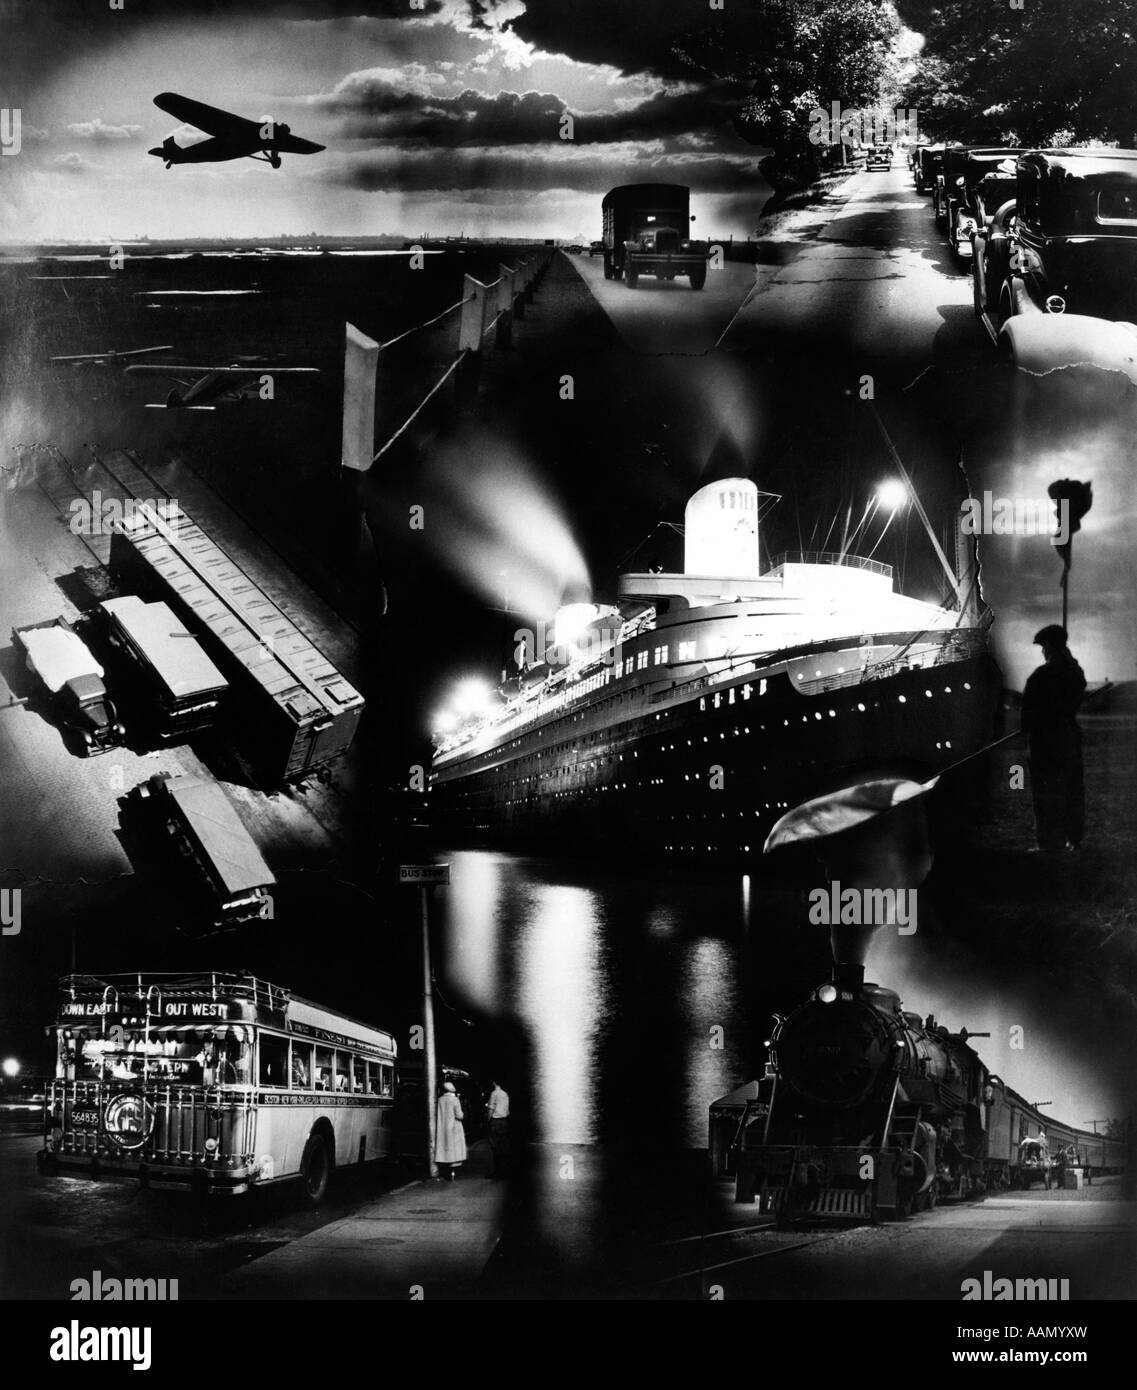 1930s MONTAGE OF TRANSPORTATION IMAGES AIRPLANE RAILROAD TRAIN BUS TRUCK AUTOMOBILE OCEAN LINER - Stock Image